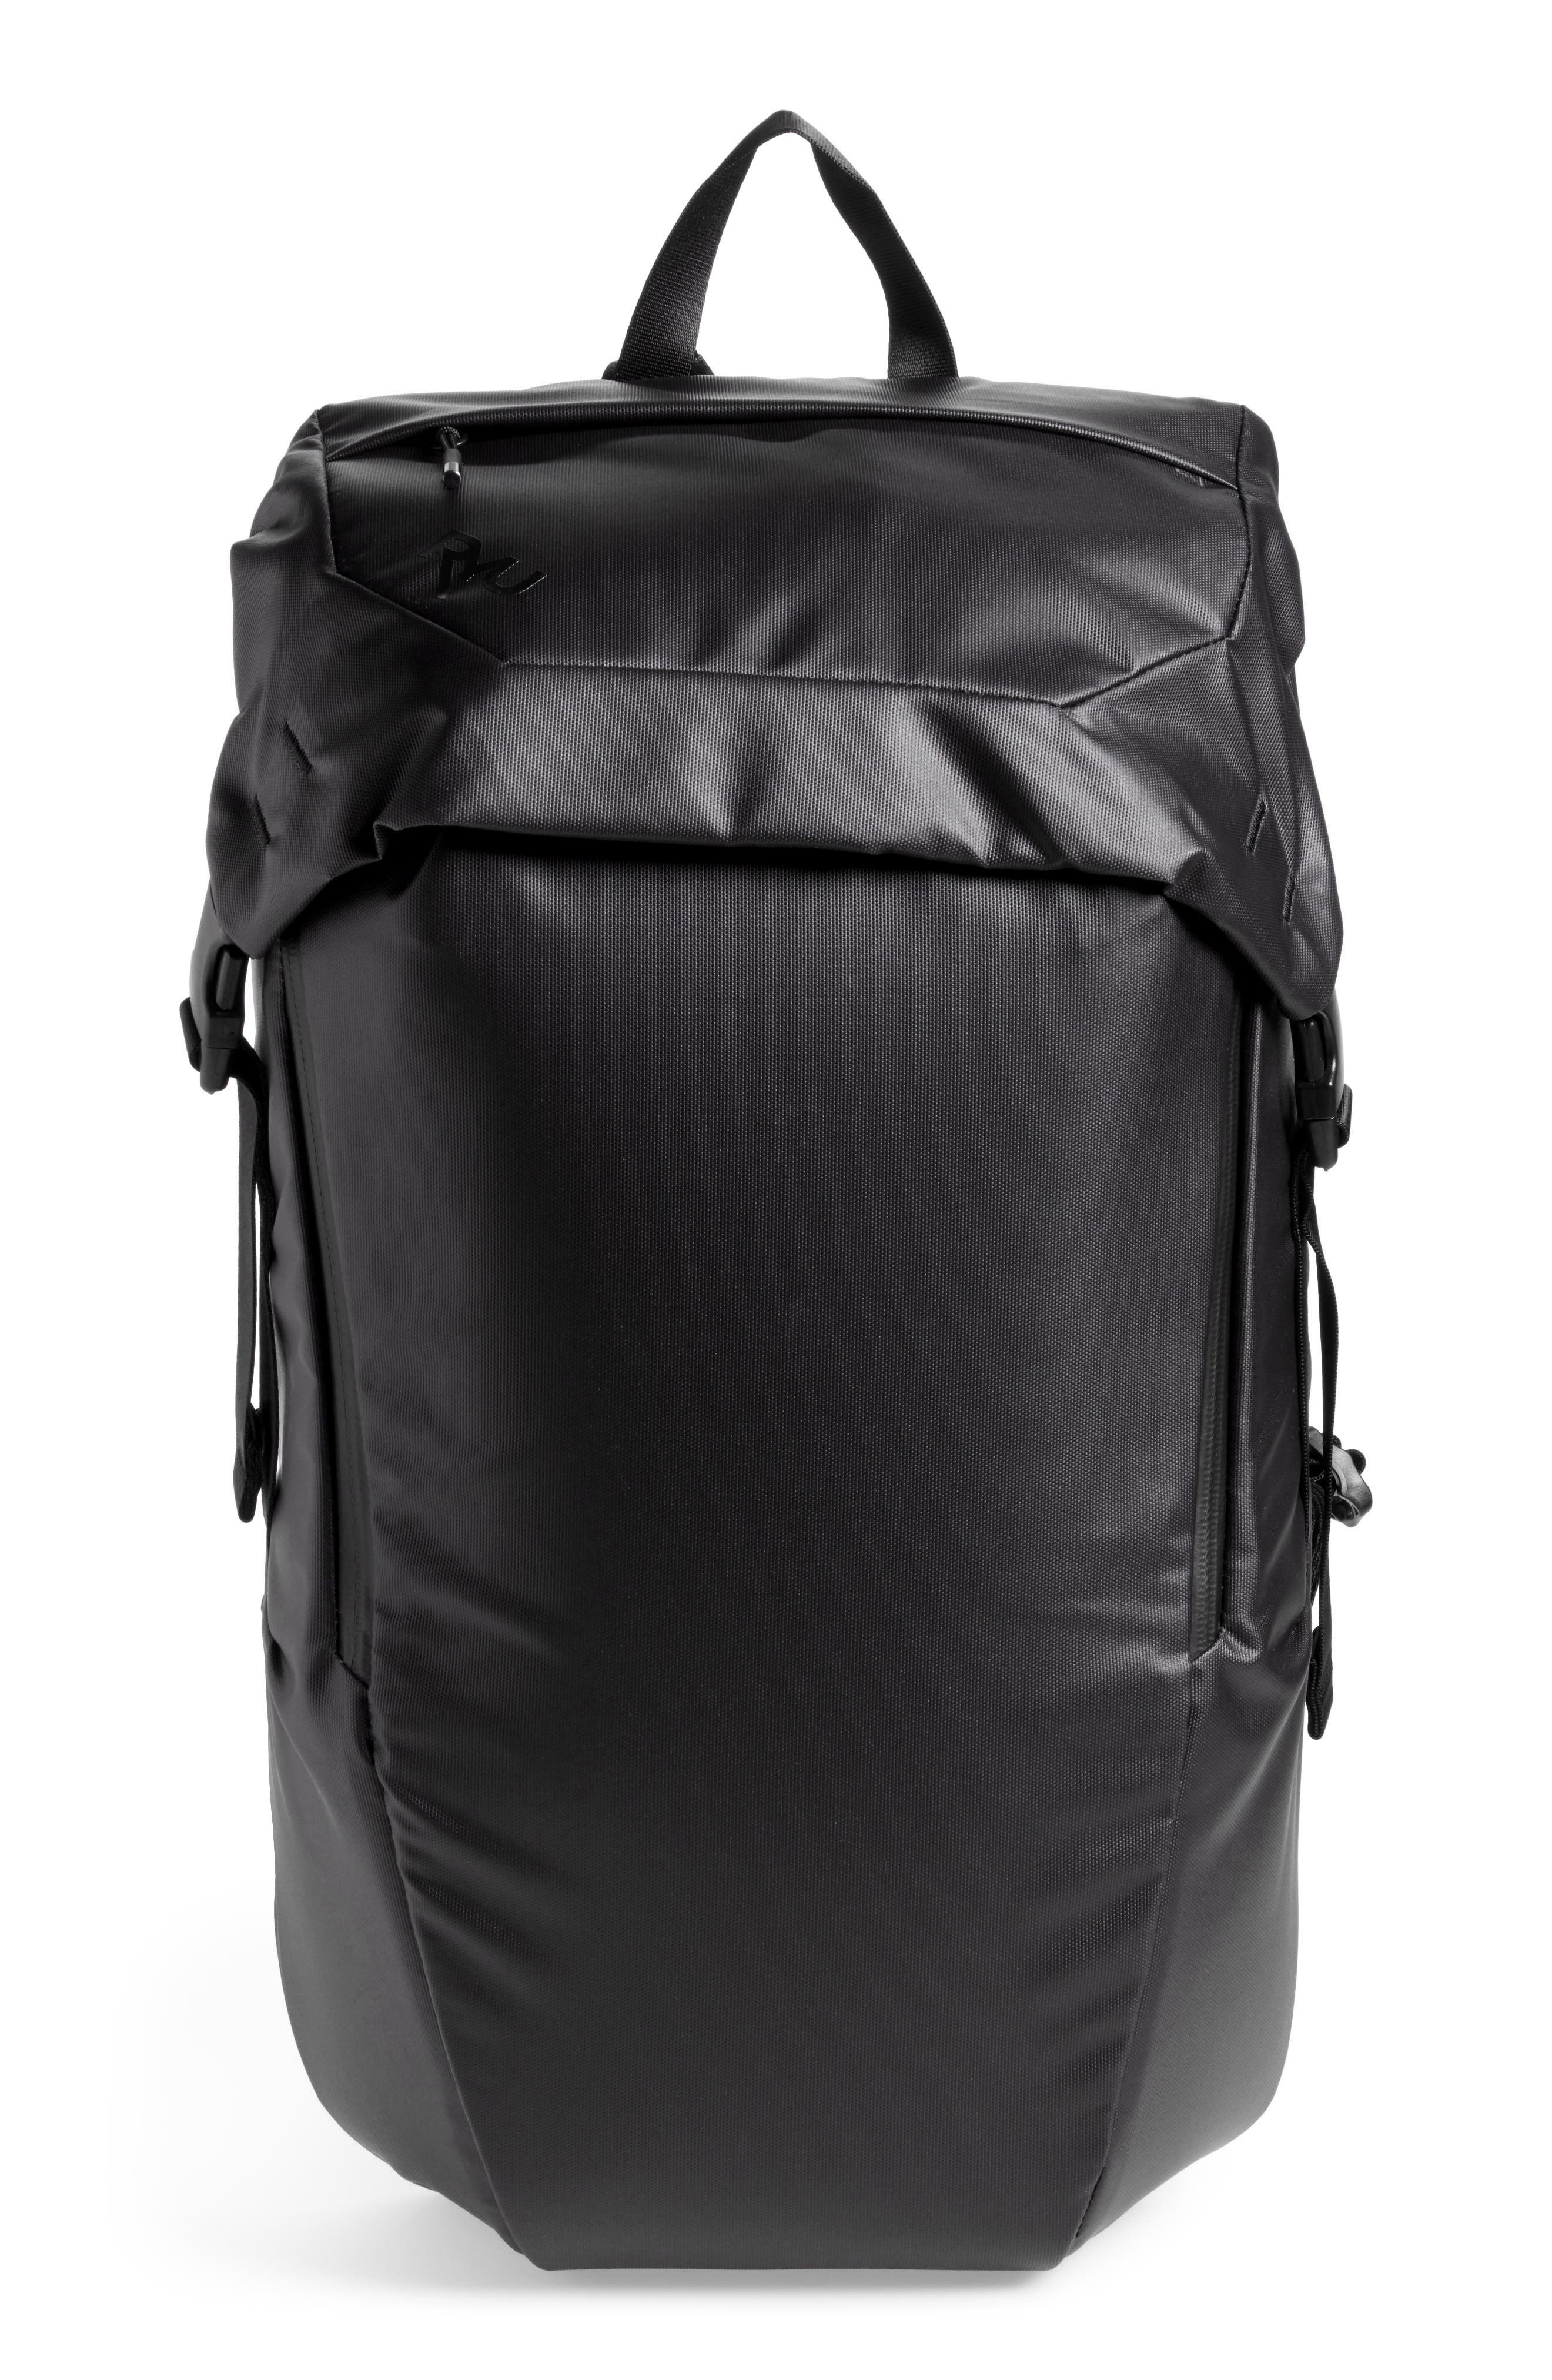 Quick Pack Backpack,                             Main thumbnail 1, color,